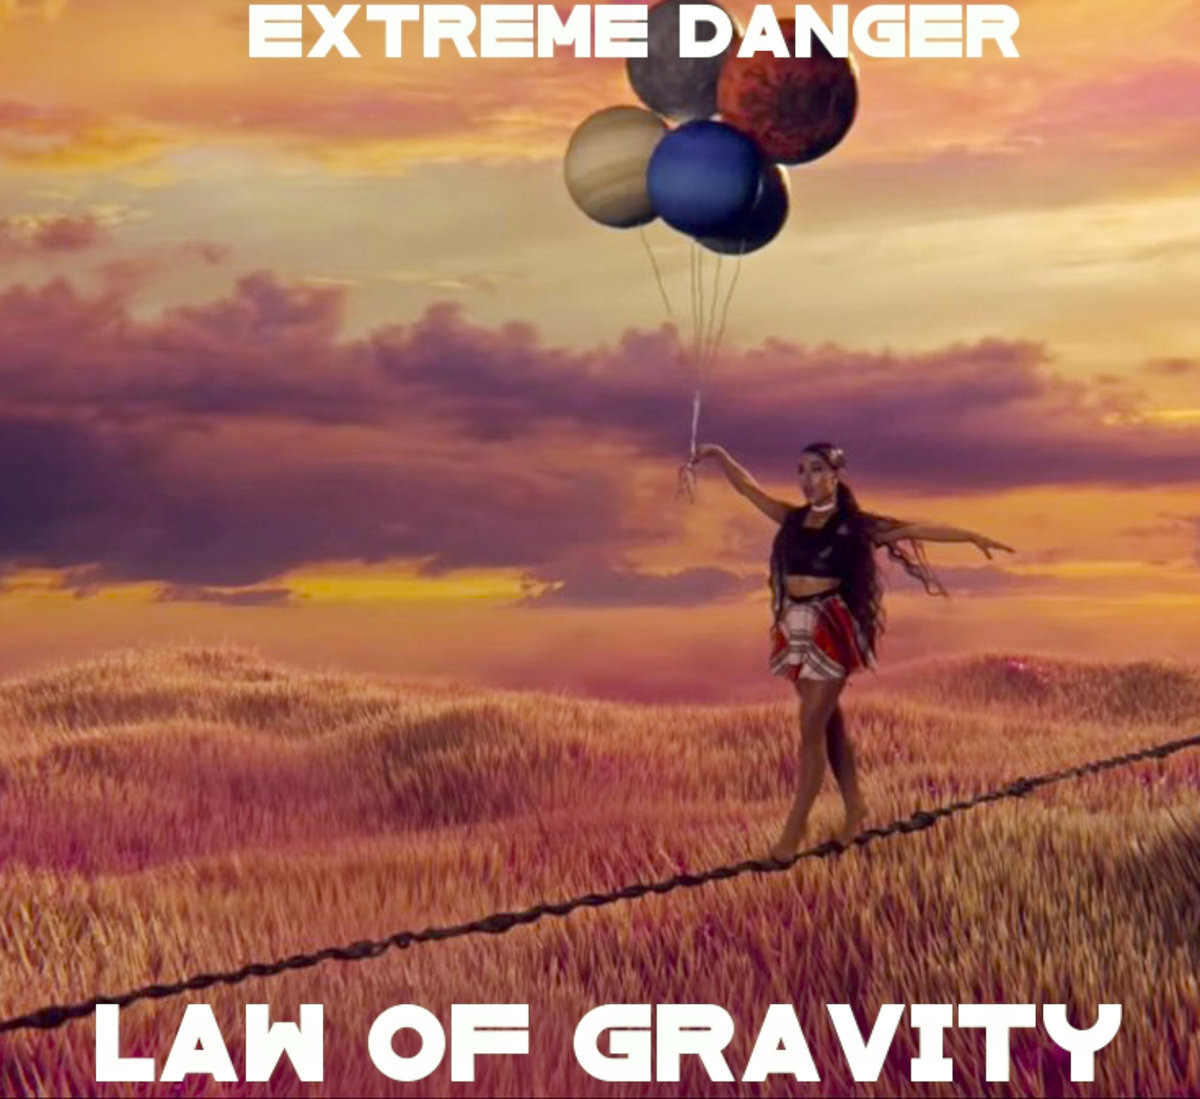 Law Of Gravity - EXTREME DANGER